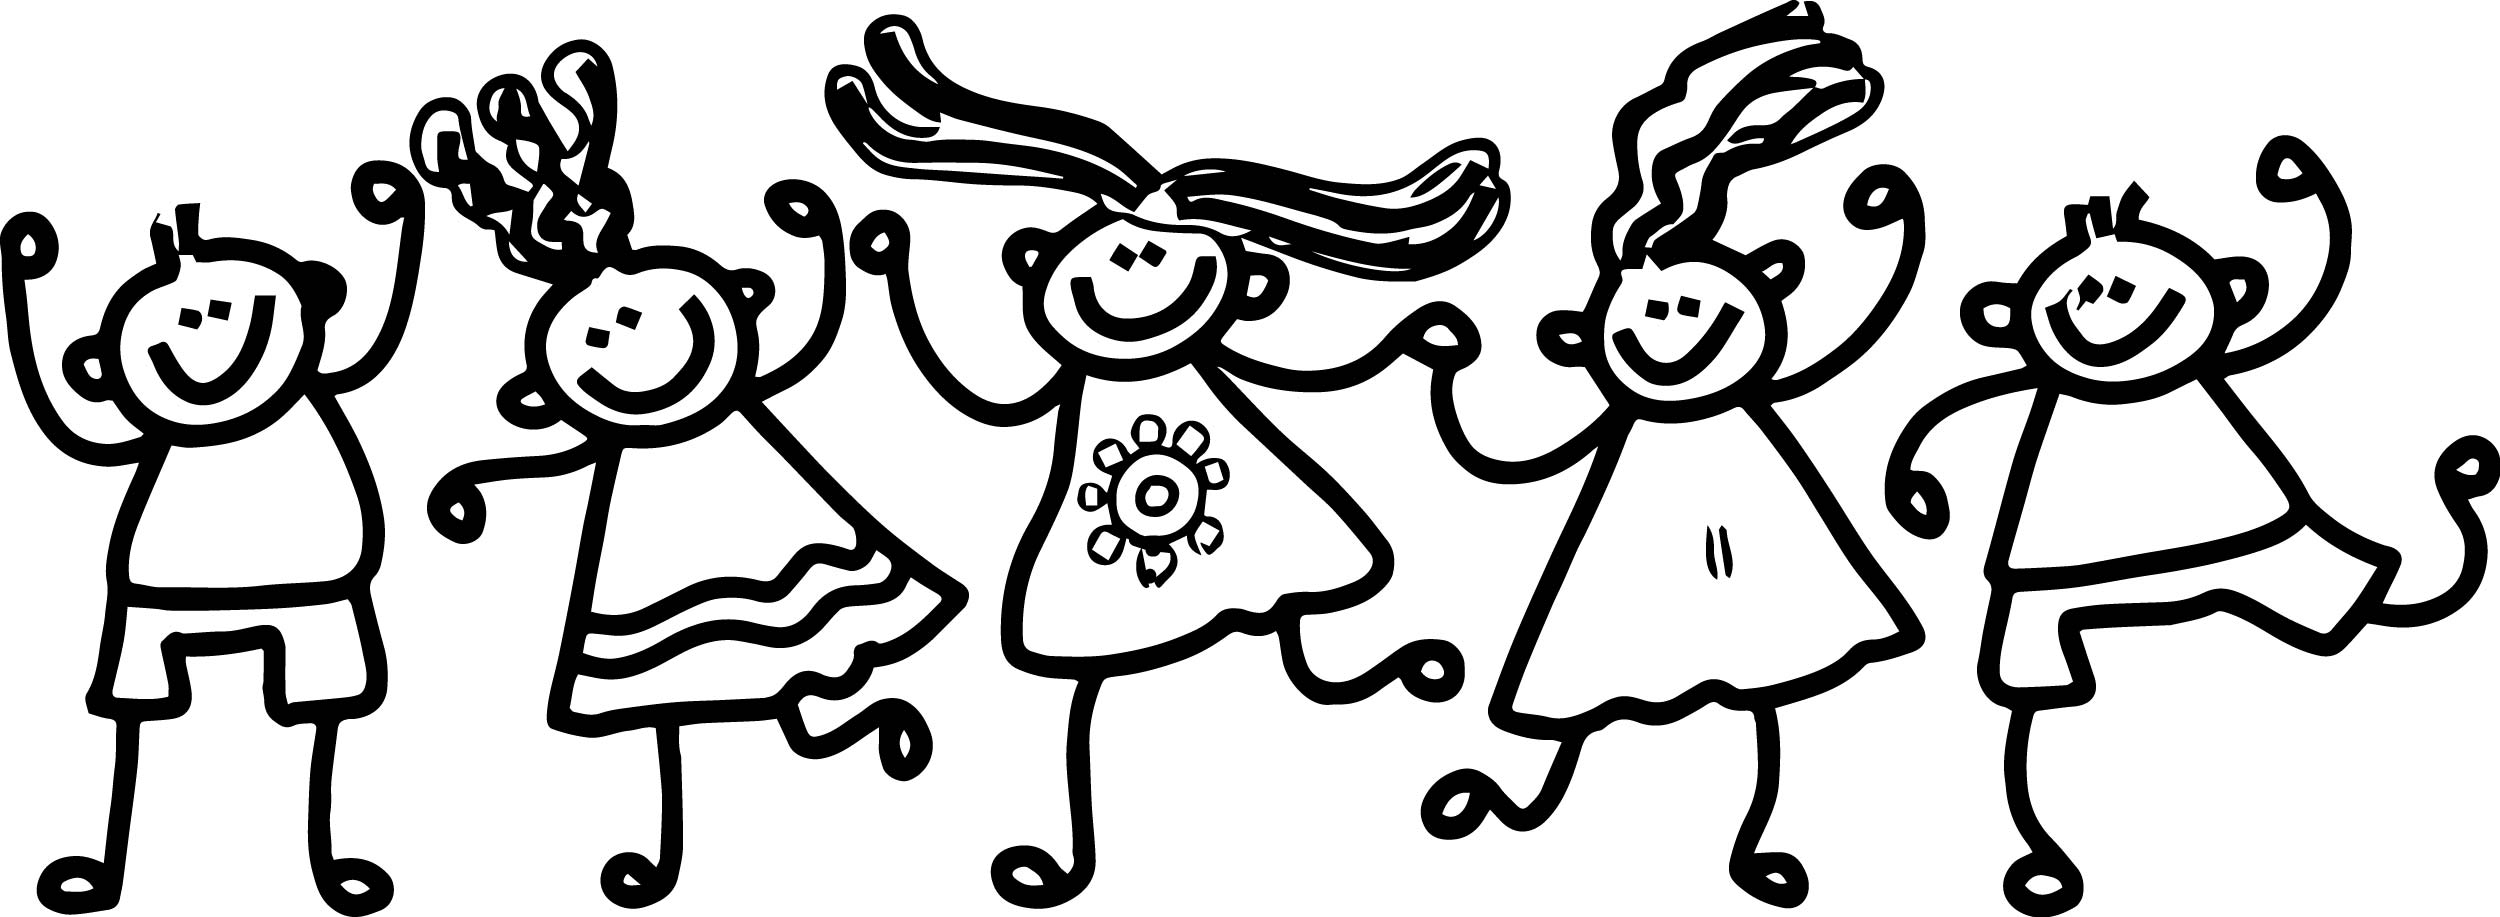 Five Children Summer Coloring Page